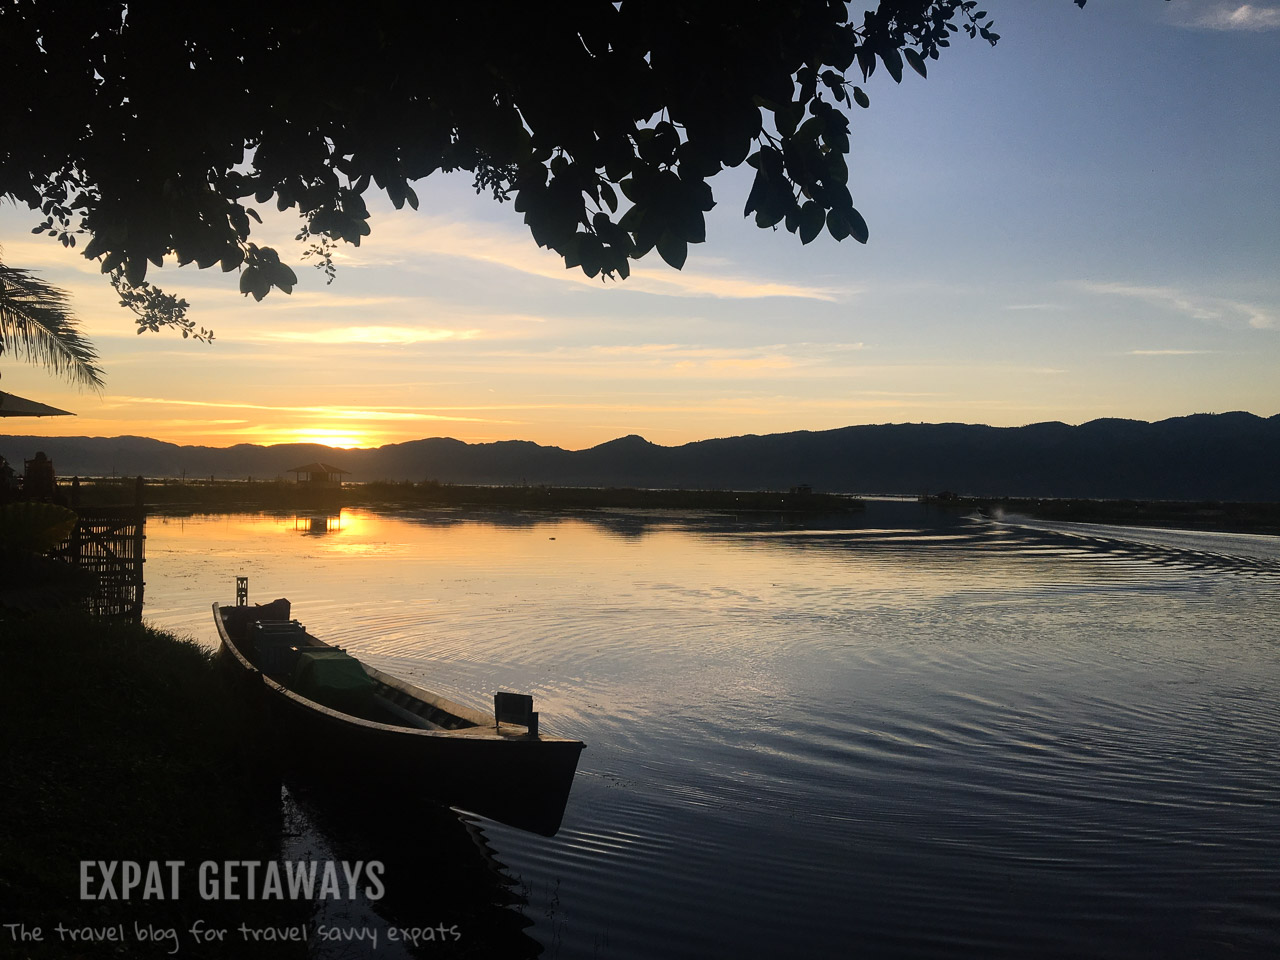 Sunsets over Inle Lake Resort, Myanmar